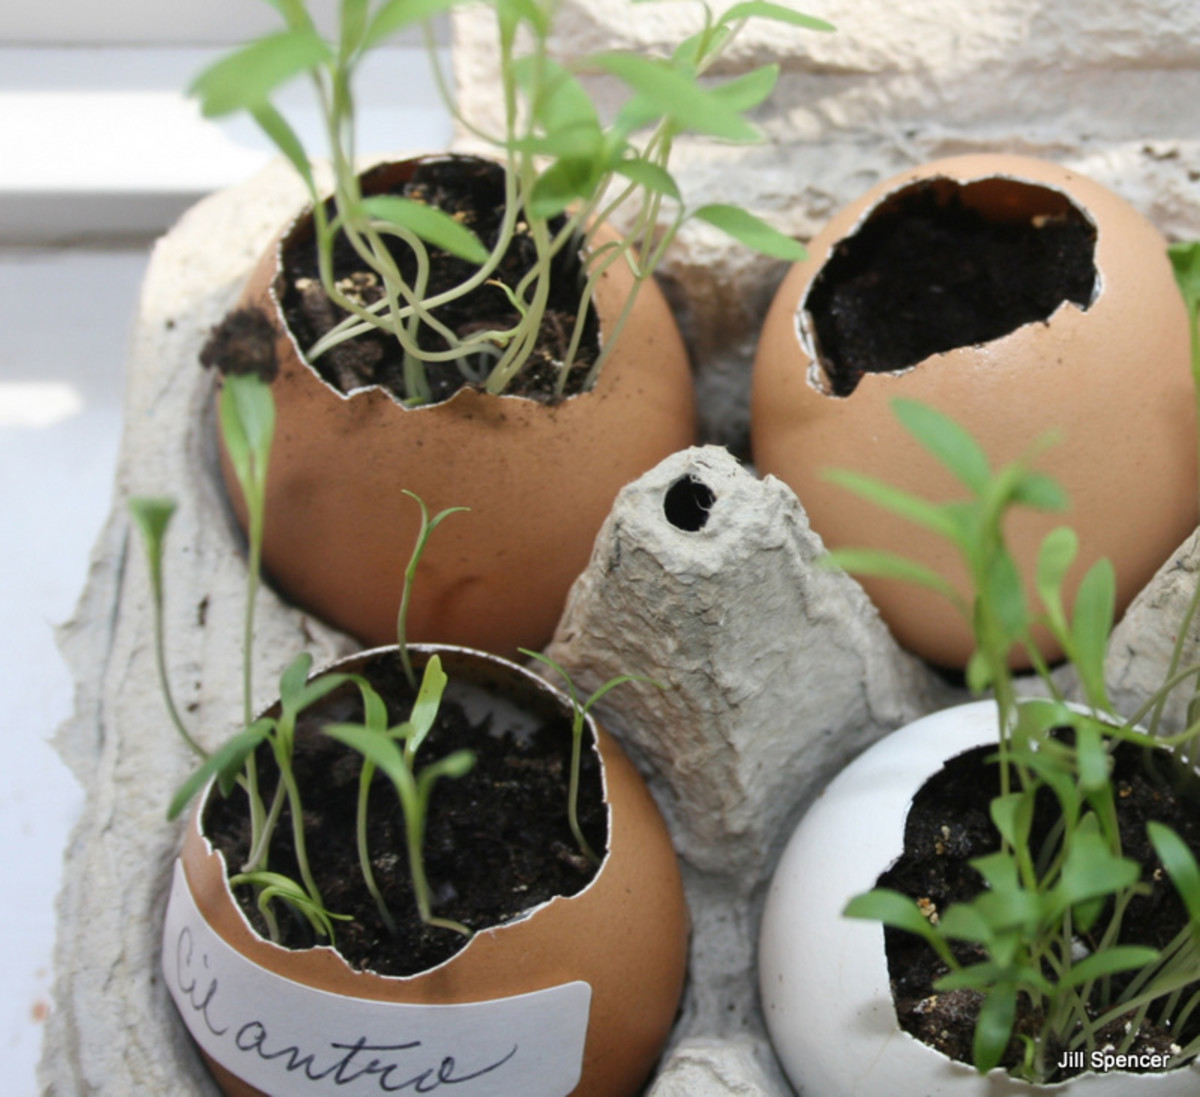 These eggshell pots hold cilantro seedlings.